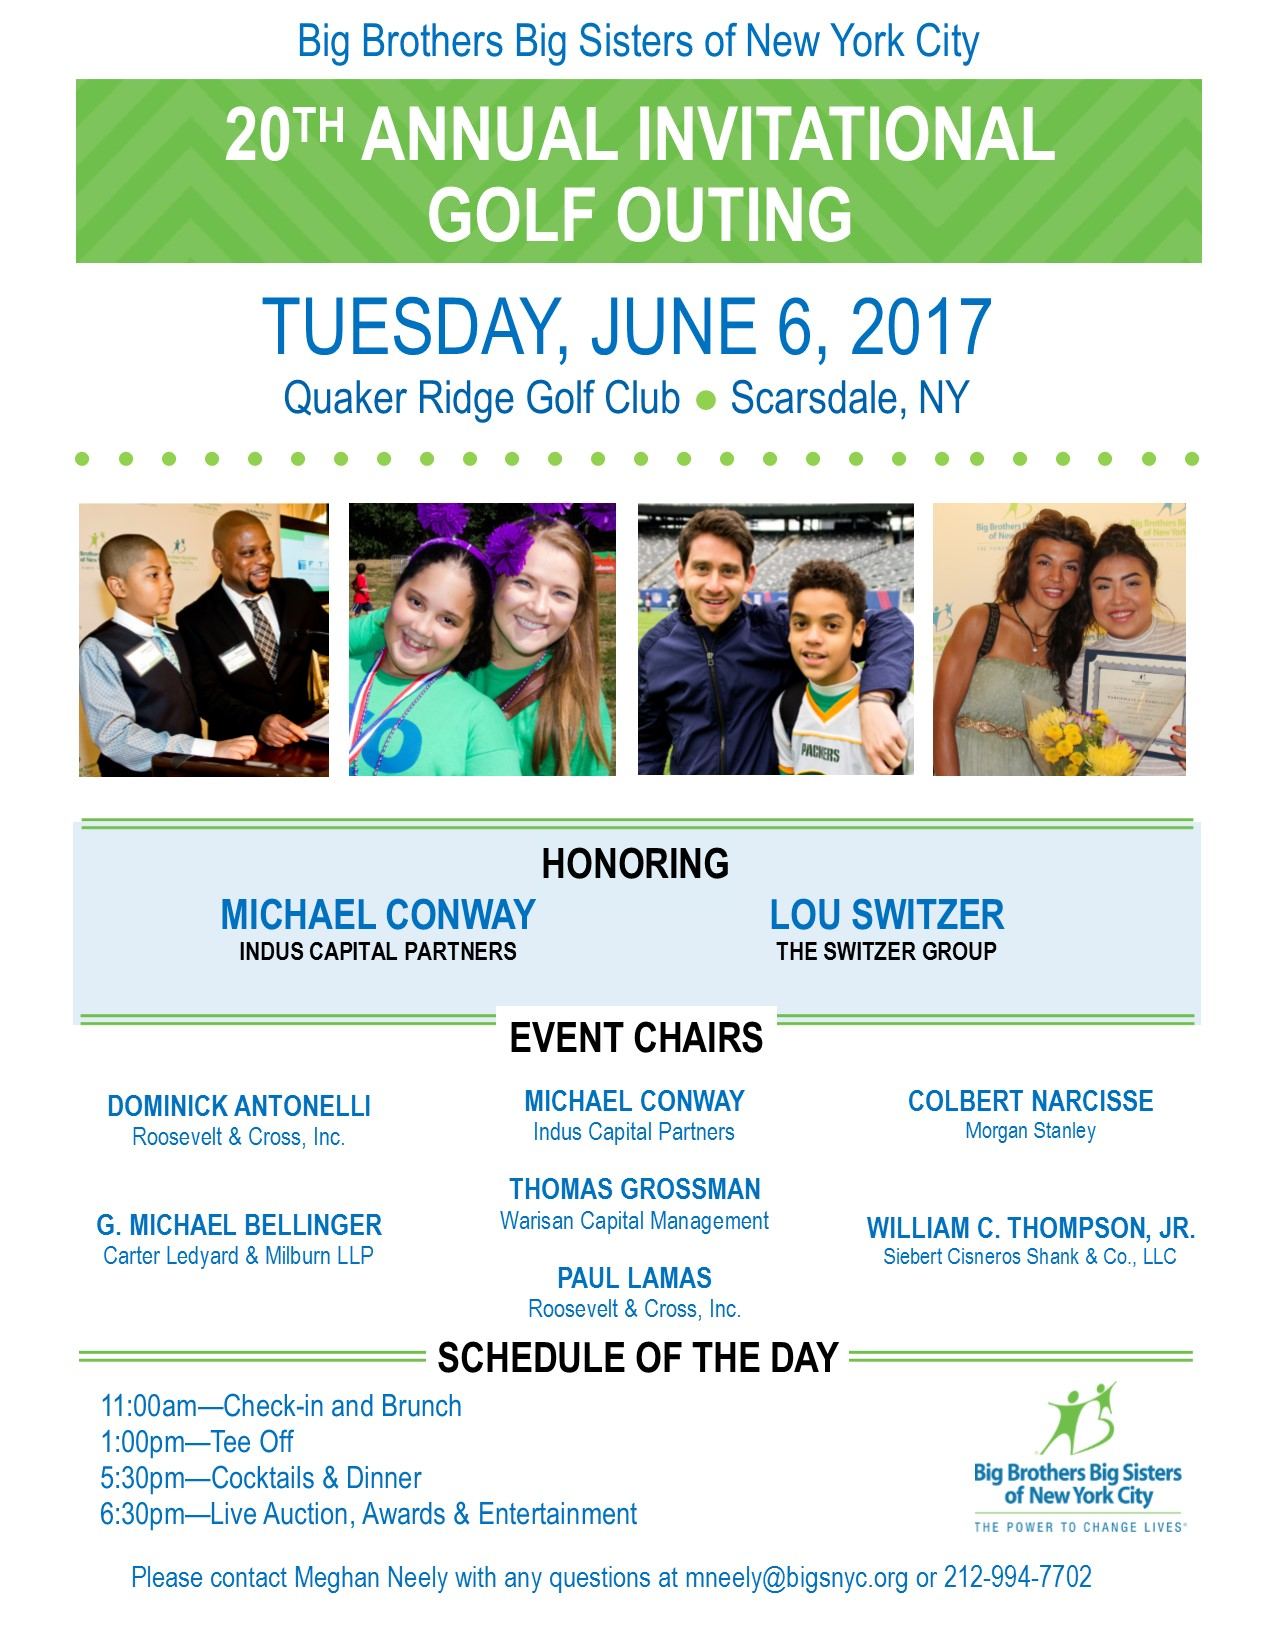 2017 BBBS of NYC Golf Outing Invitationv2.jpg